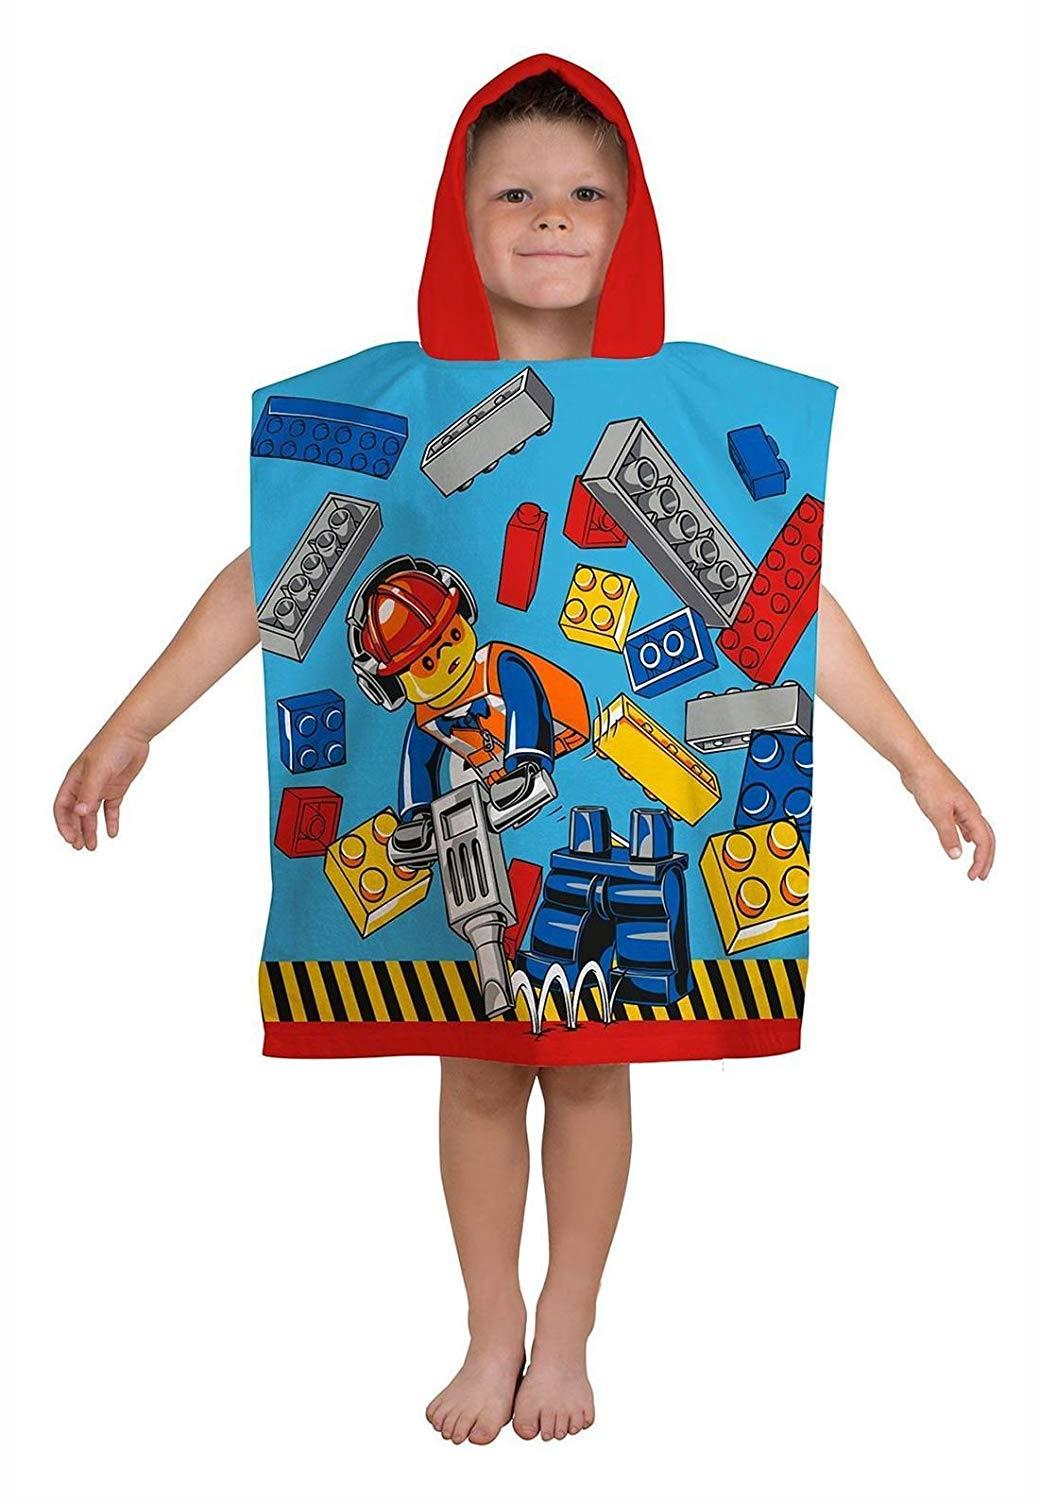 Kids-Boys-Novelty-Girls-Character-Hooded-Towel-Poncho-Beach-Bath-Swim thumbnail 7